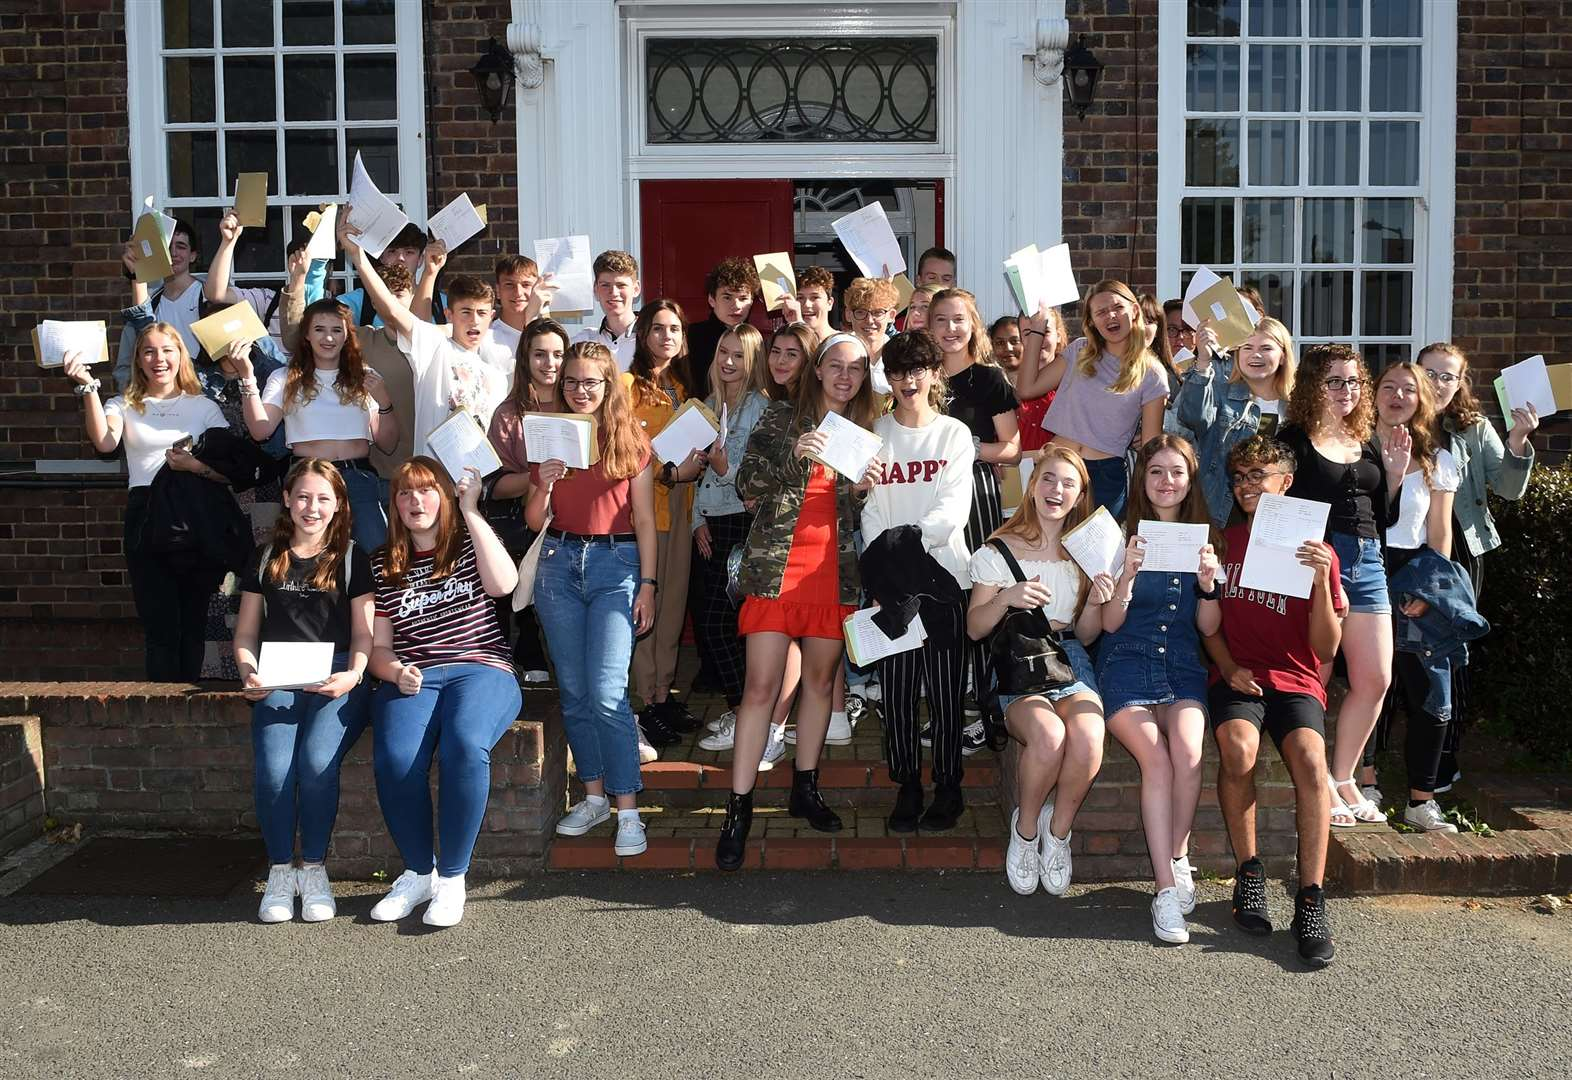 Suffolk students 'got higher GCSE grades'